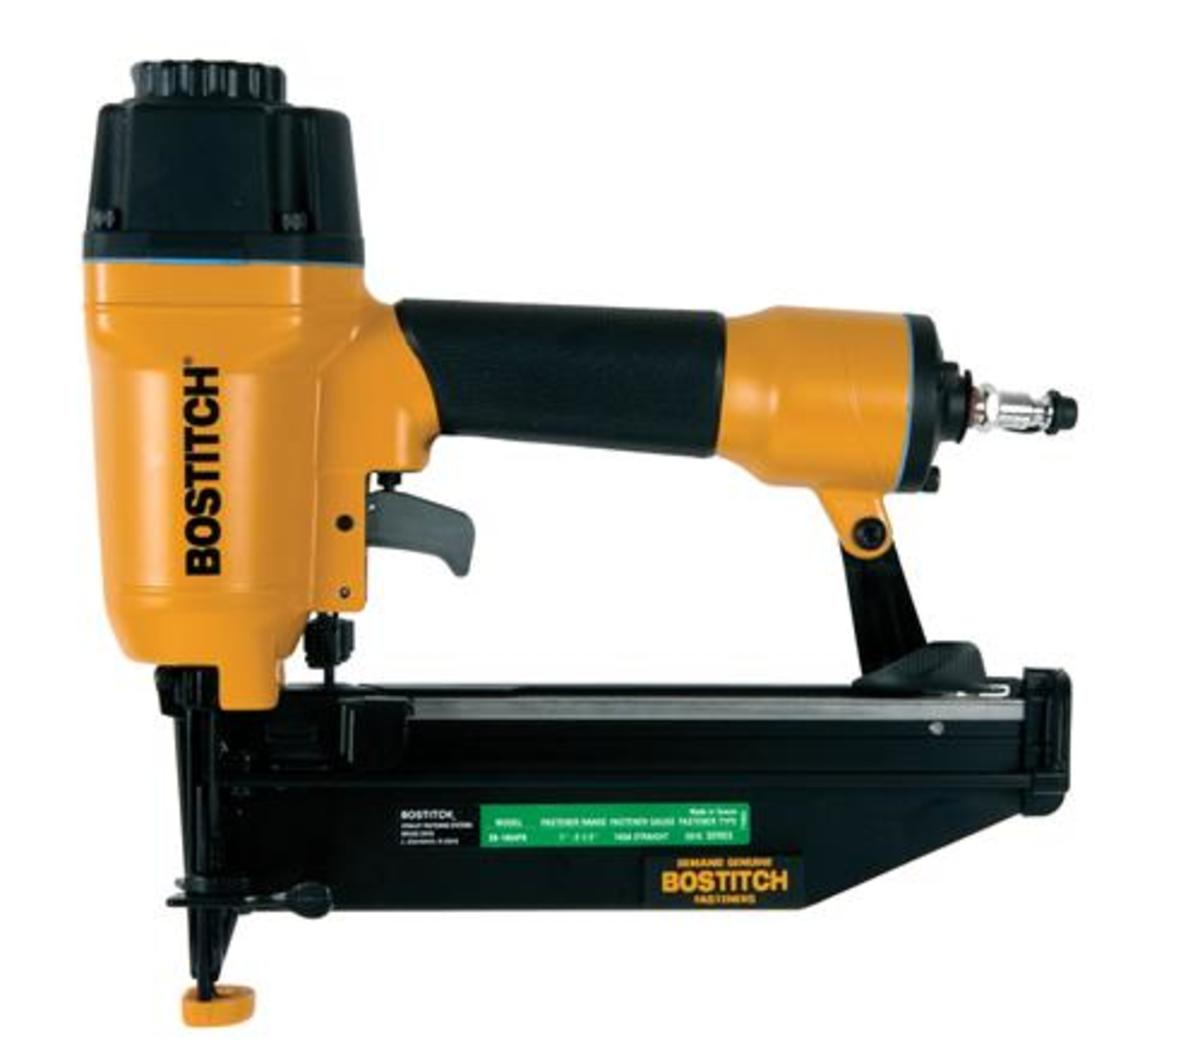 Bostitch 16-gauge straight finish air nailer kit.